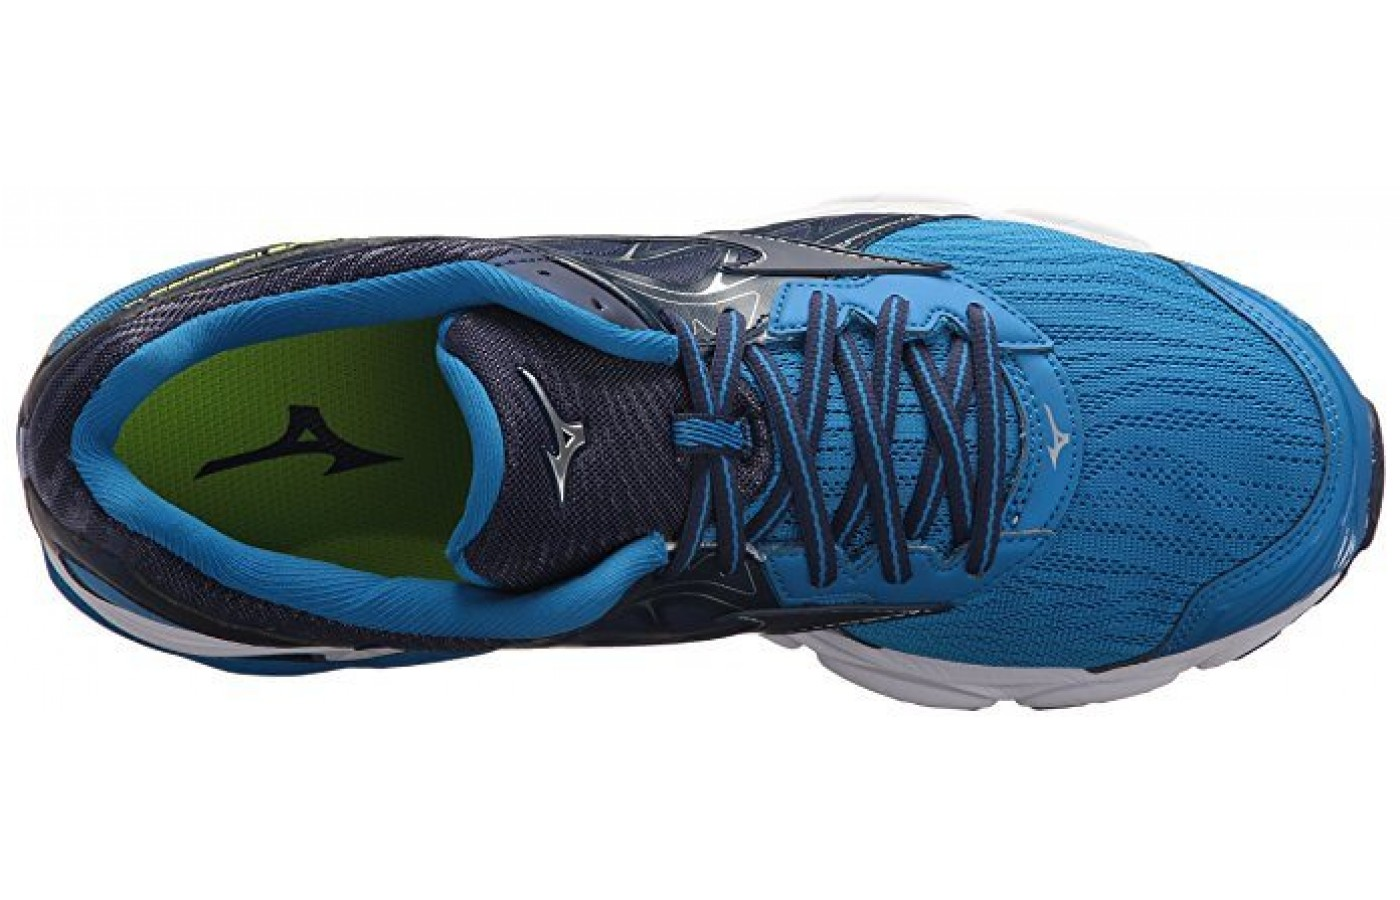 The Mizuno Wave Inspire 14 lacing system